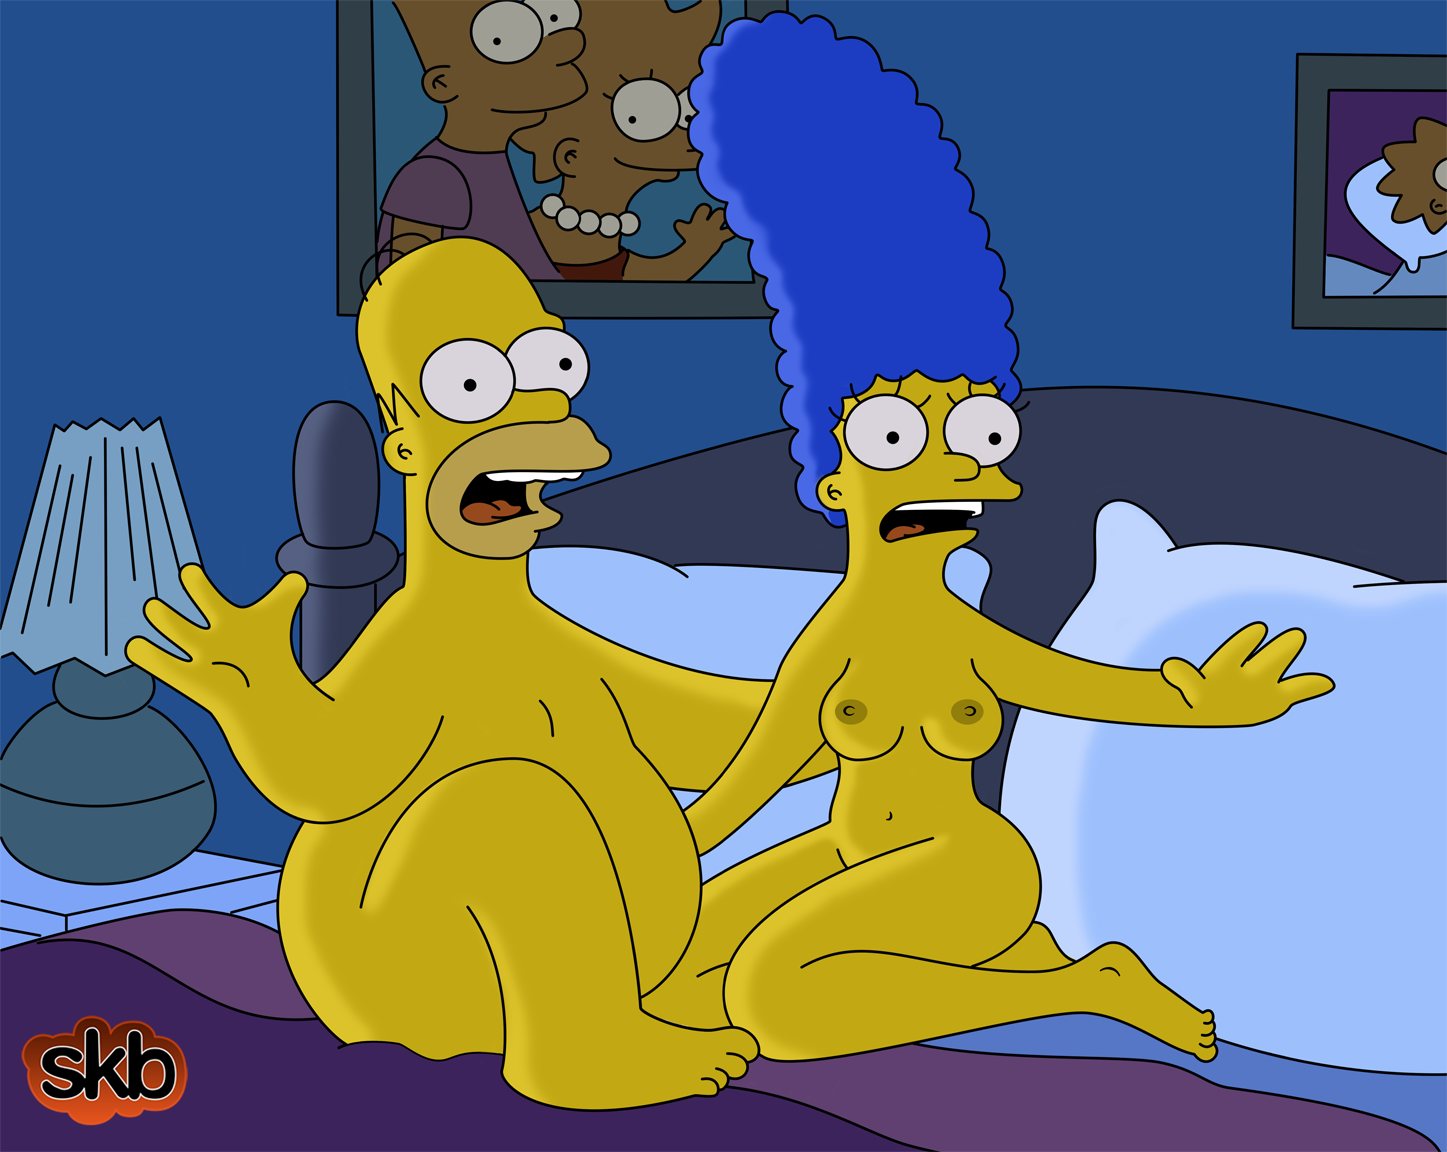 nudes Marge simpson